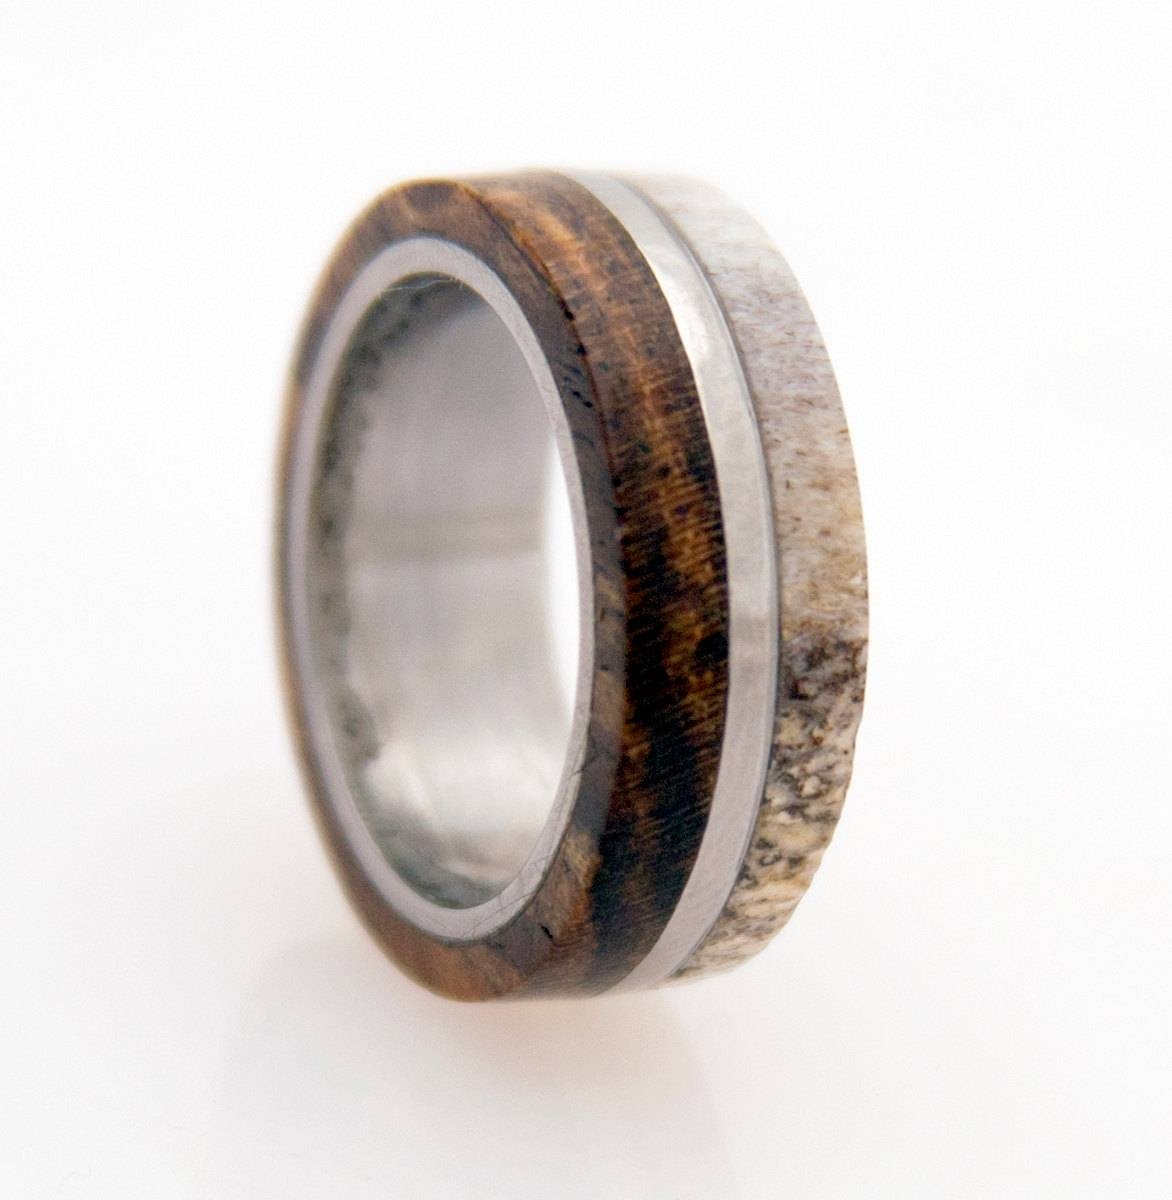 Antler Ring Titanium Ring With Wood Bocote Deer Antler Band In Horn Inlay Titanium Wedding Bands (View 3 of 15)